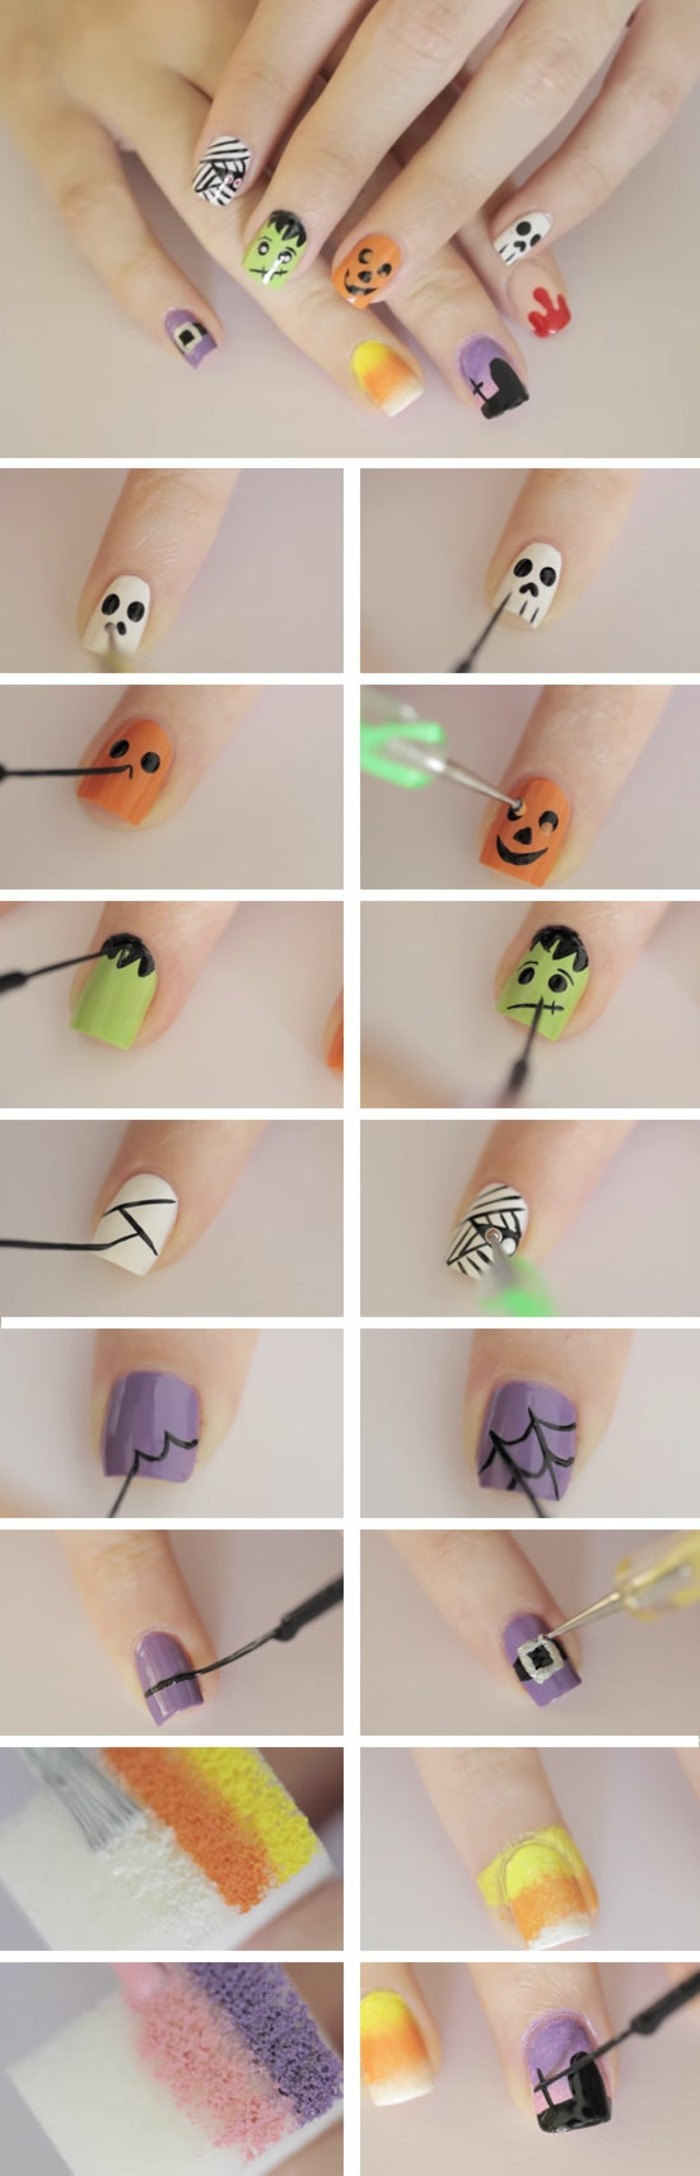 les-photos-ongles-decores-modele-d-ongle-en-gel-tuto-comment-faire